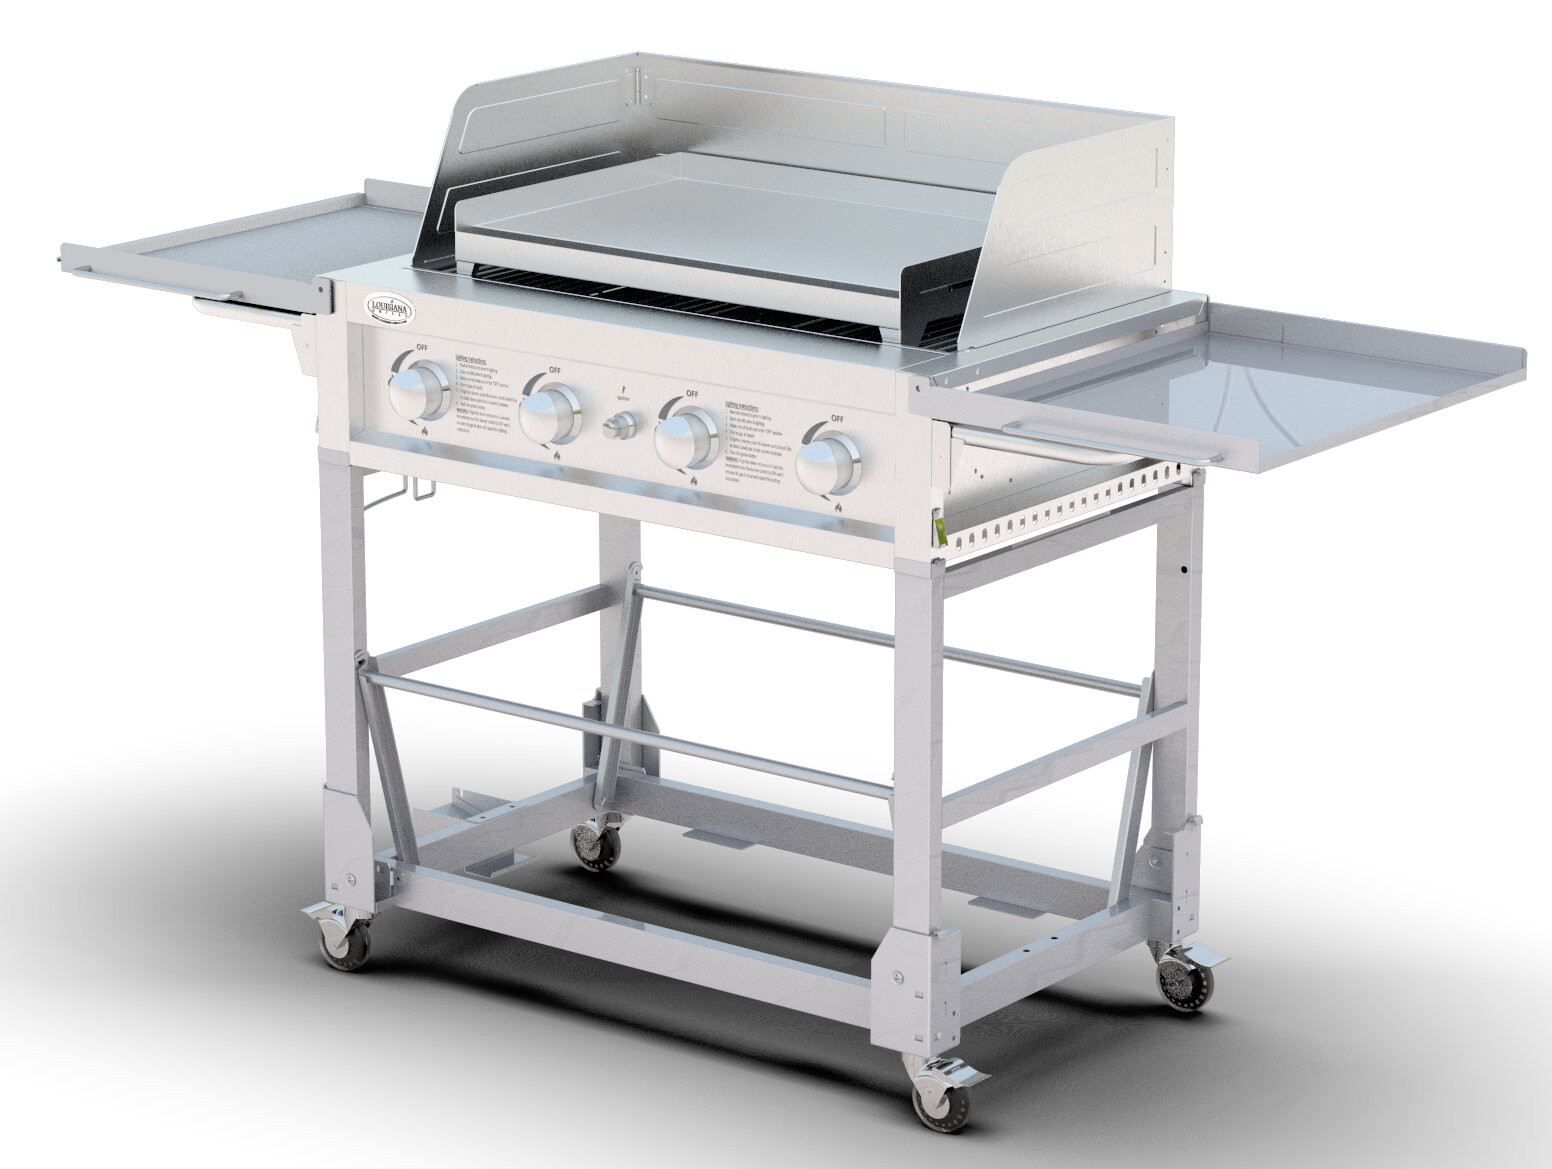 Louisianagrills 4 Burner Flat Top Propane Gas Grill With Side Shelves Reviews Wayfair